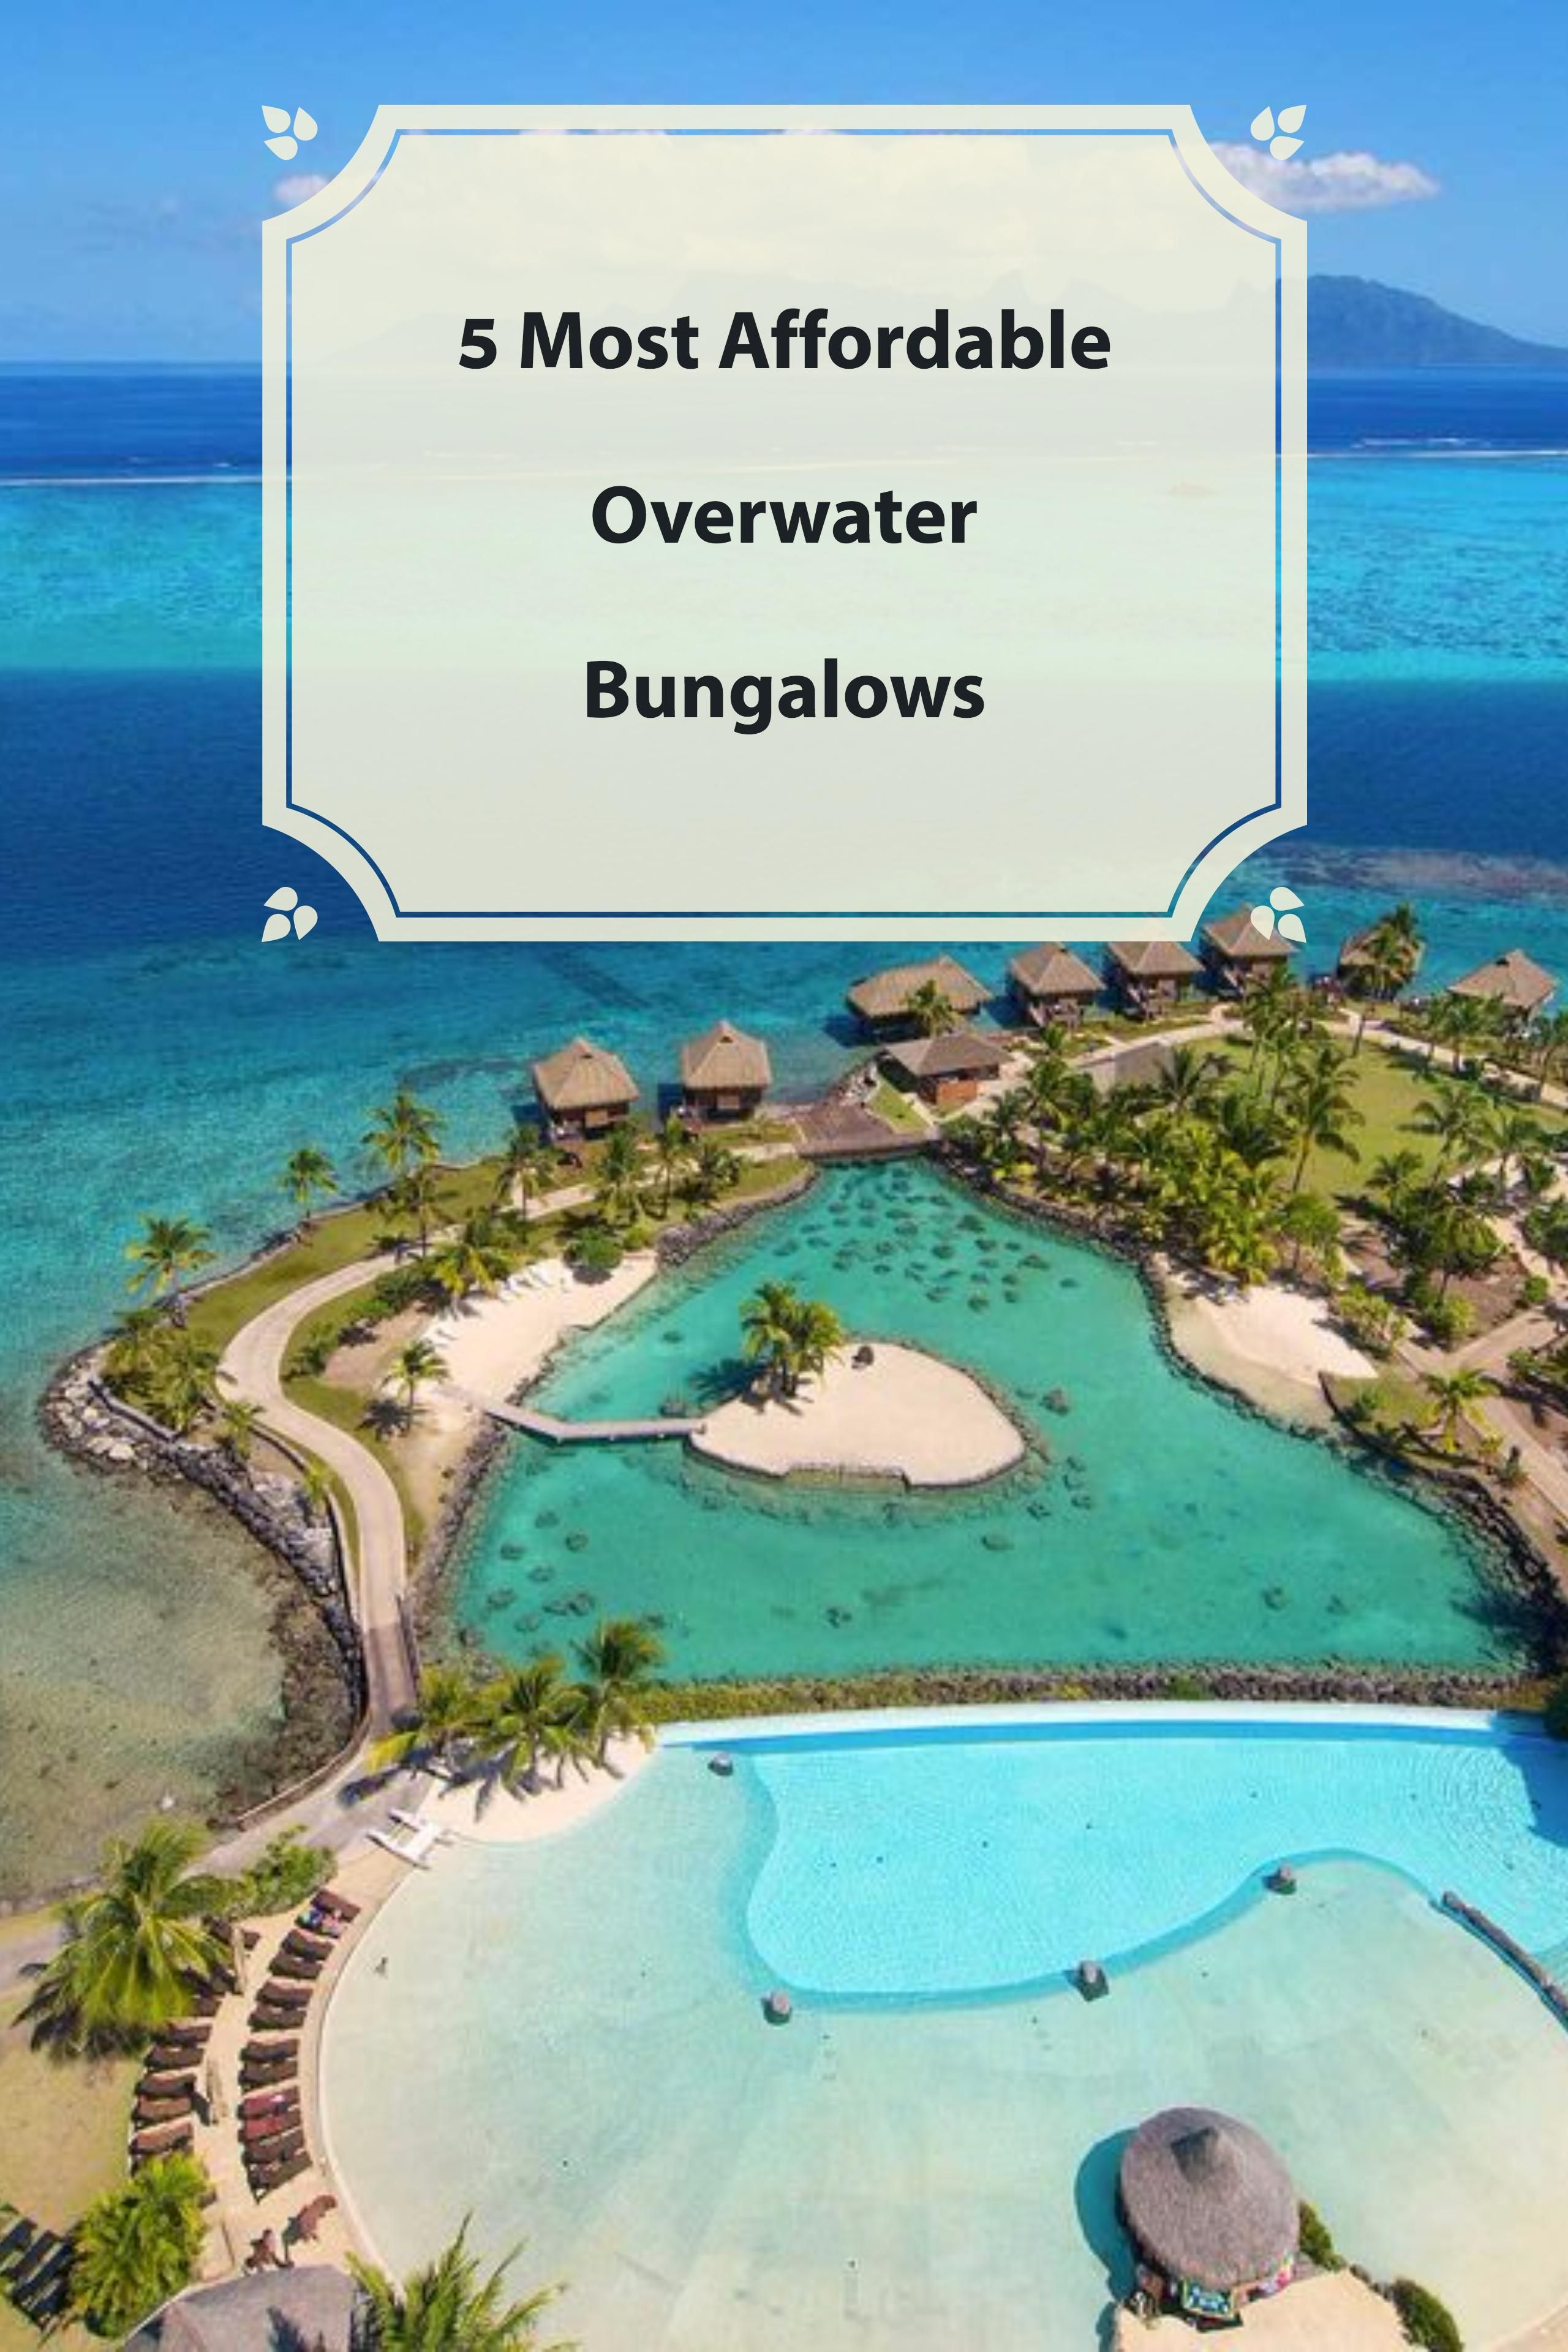 5 Most Affordable Overwater Bungalows in 2020 Best